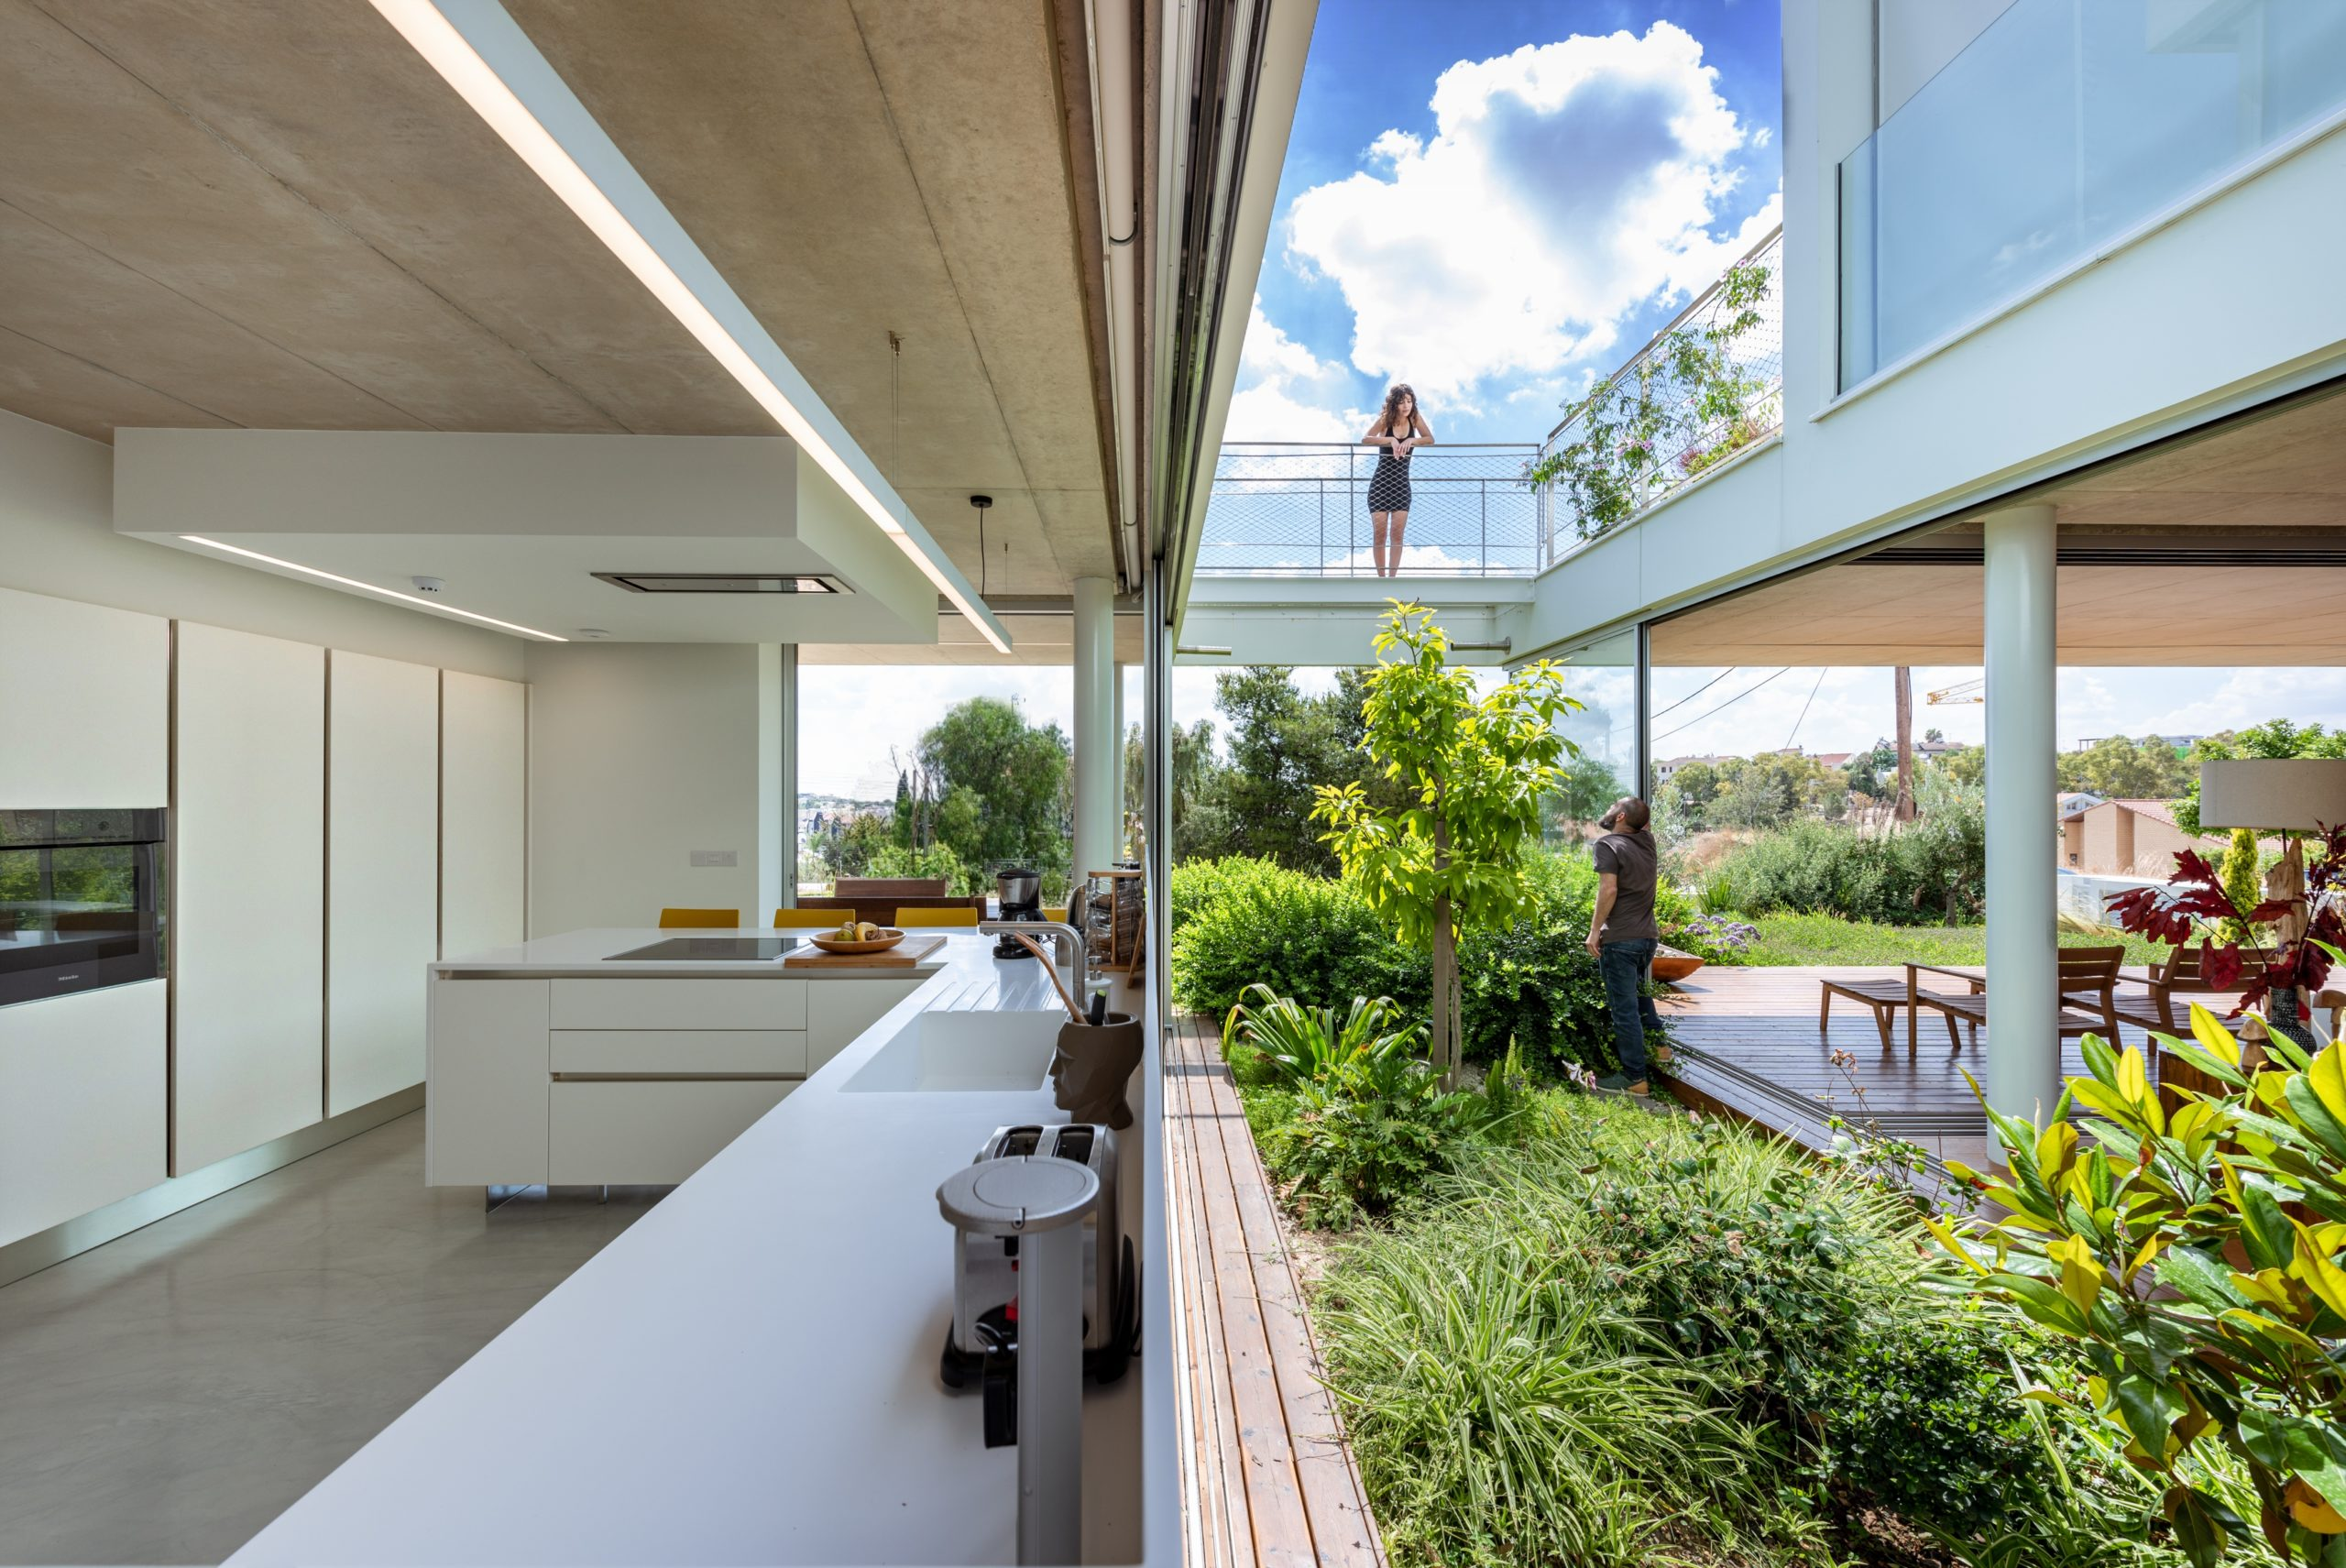 Remarkable Residences Reimagine What Makes a House a Home